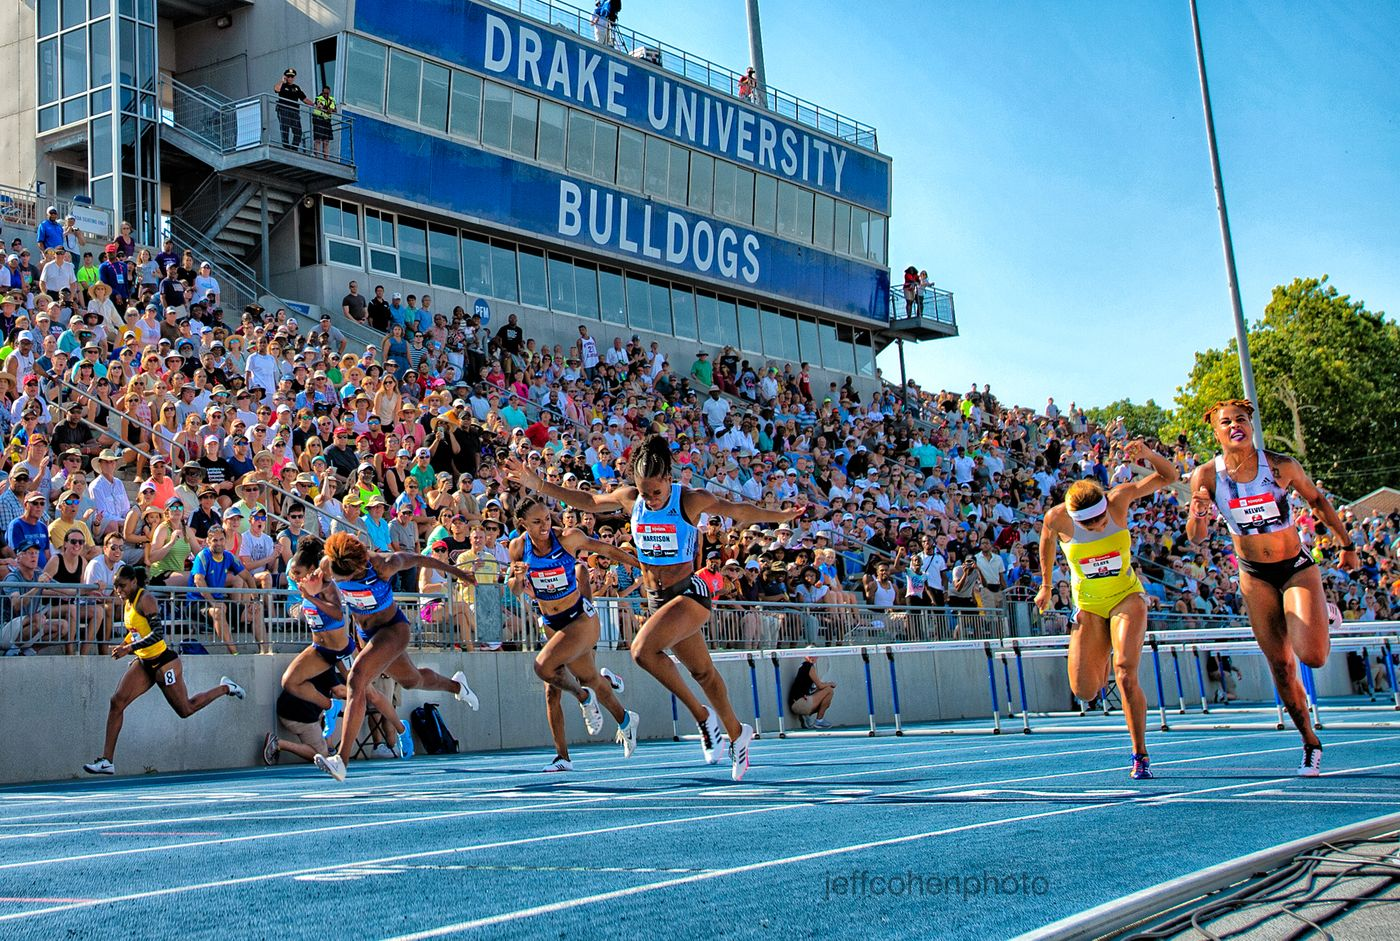 2019-USATF-Outdoor-Champs-day-3-100mh-w--4520---jeff-cohen-photo--web.jpg